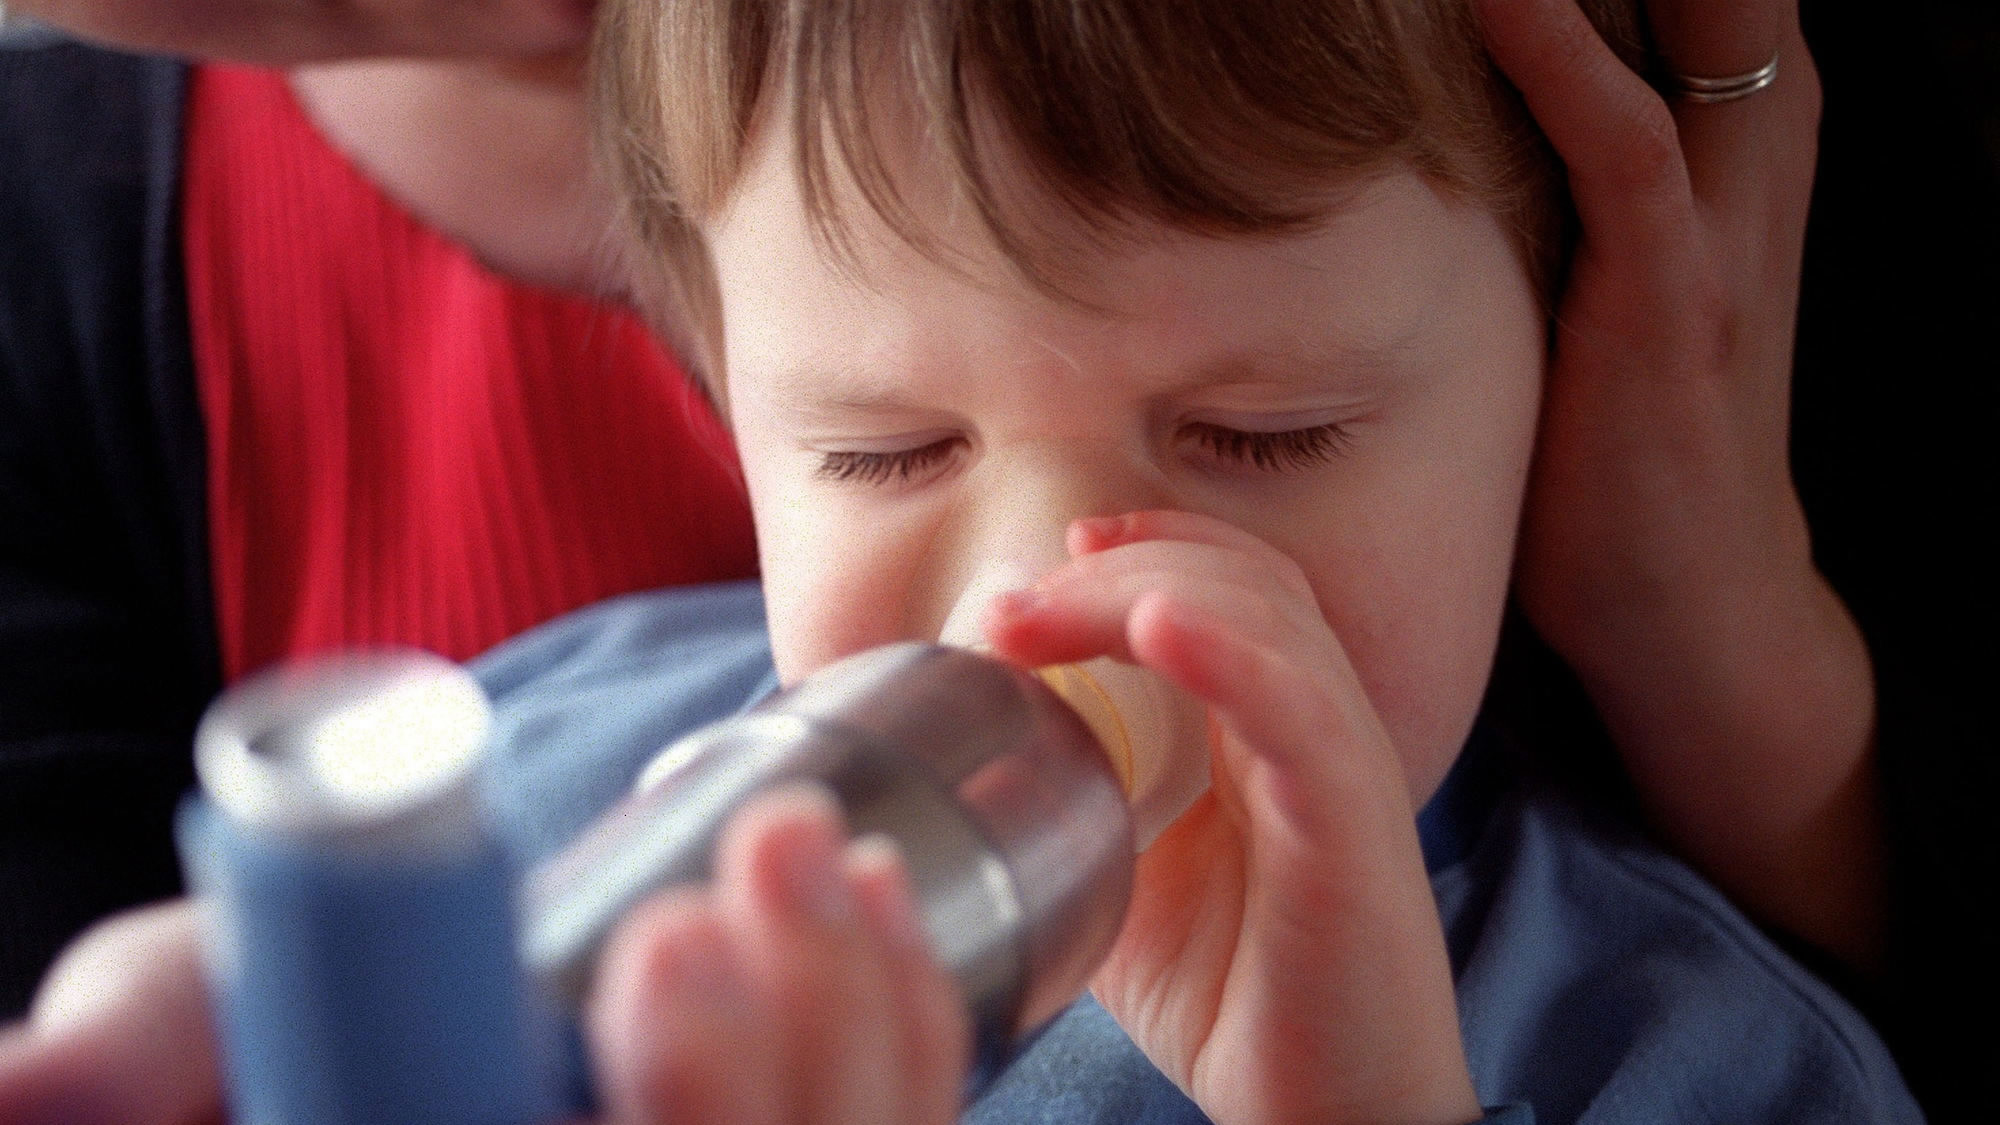 Obese Kids More Likely to Have Asthma, With Worse Symptoms recommendations